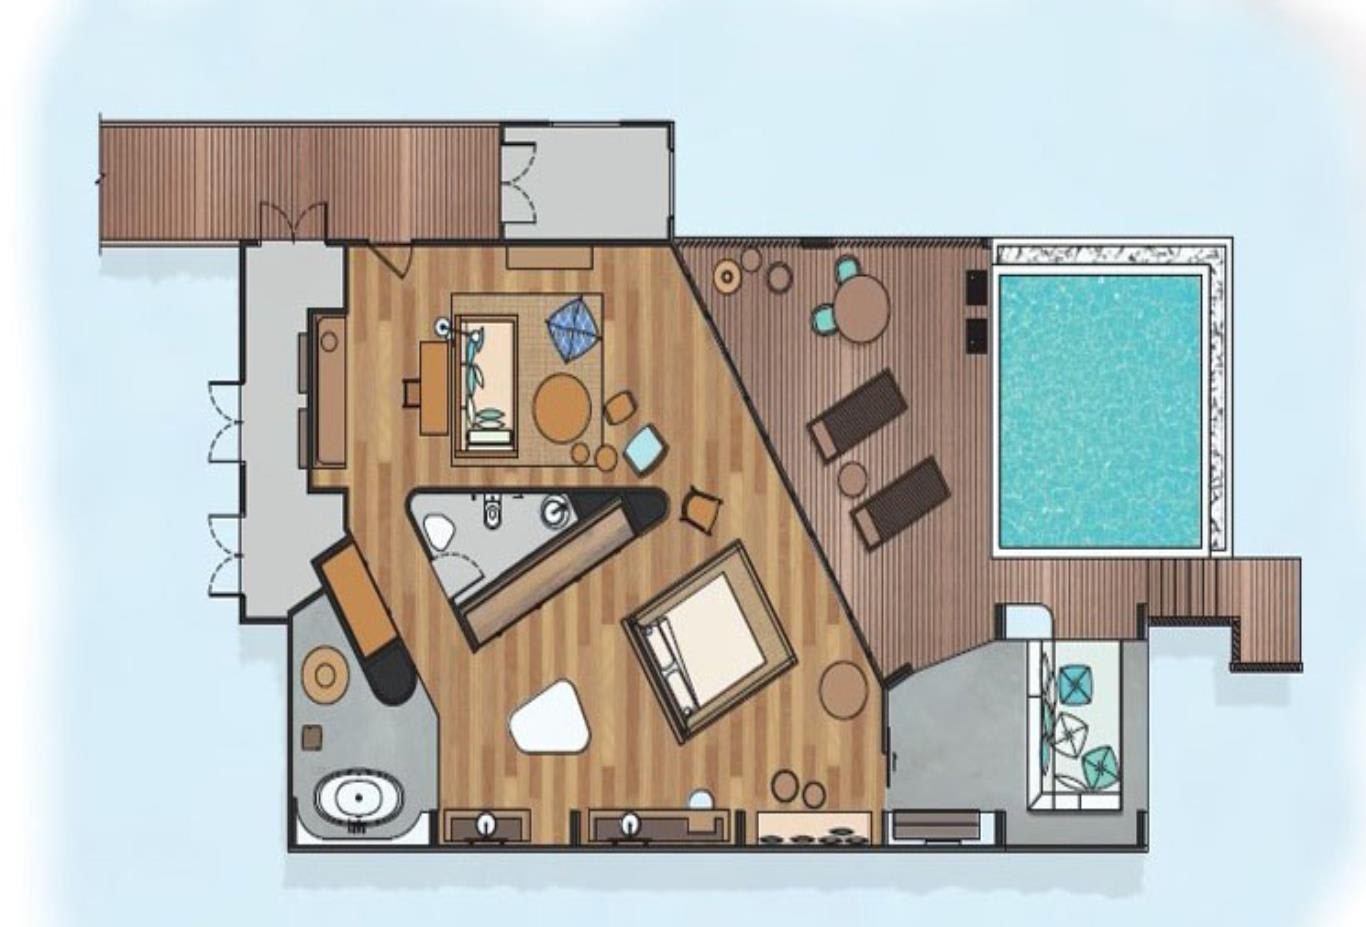 Ocean Reef House floorplan